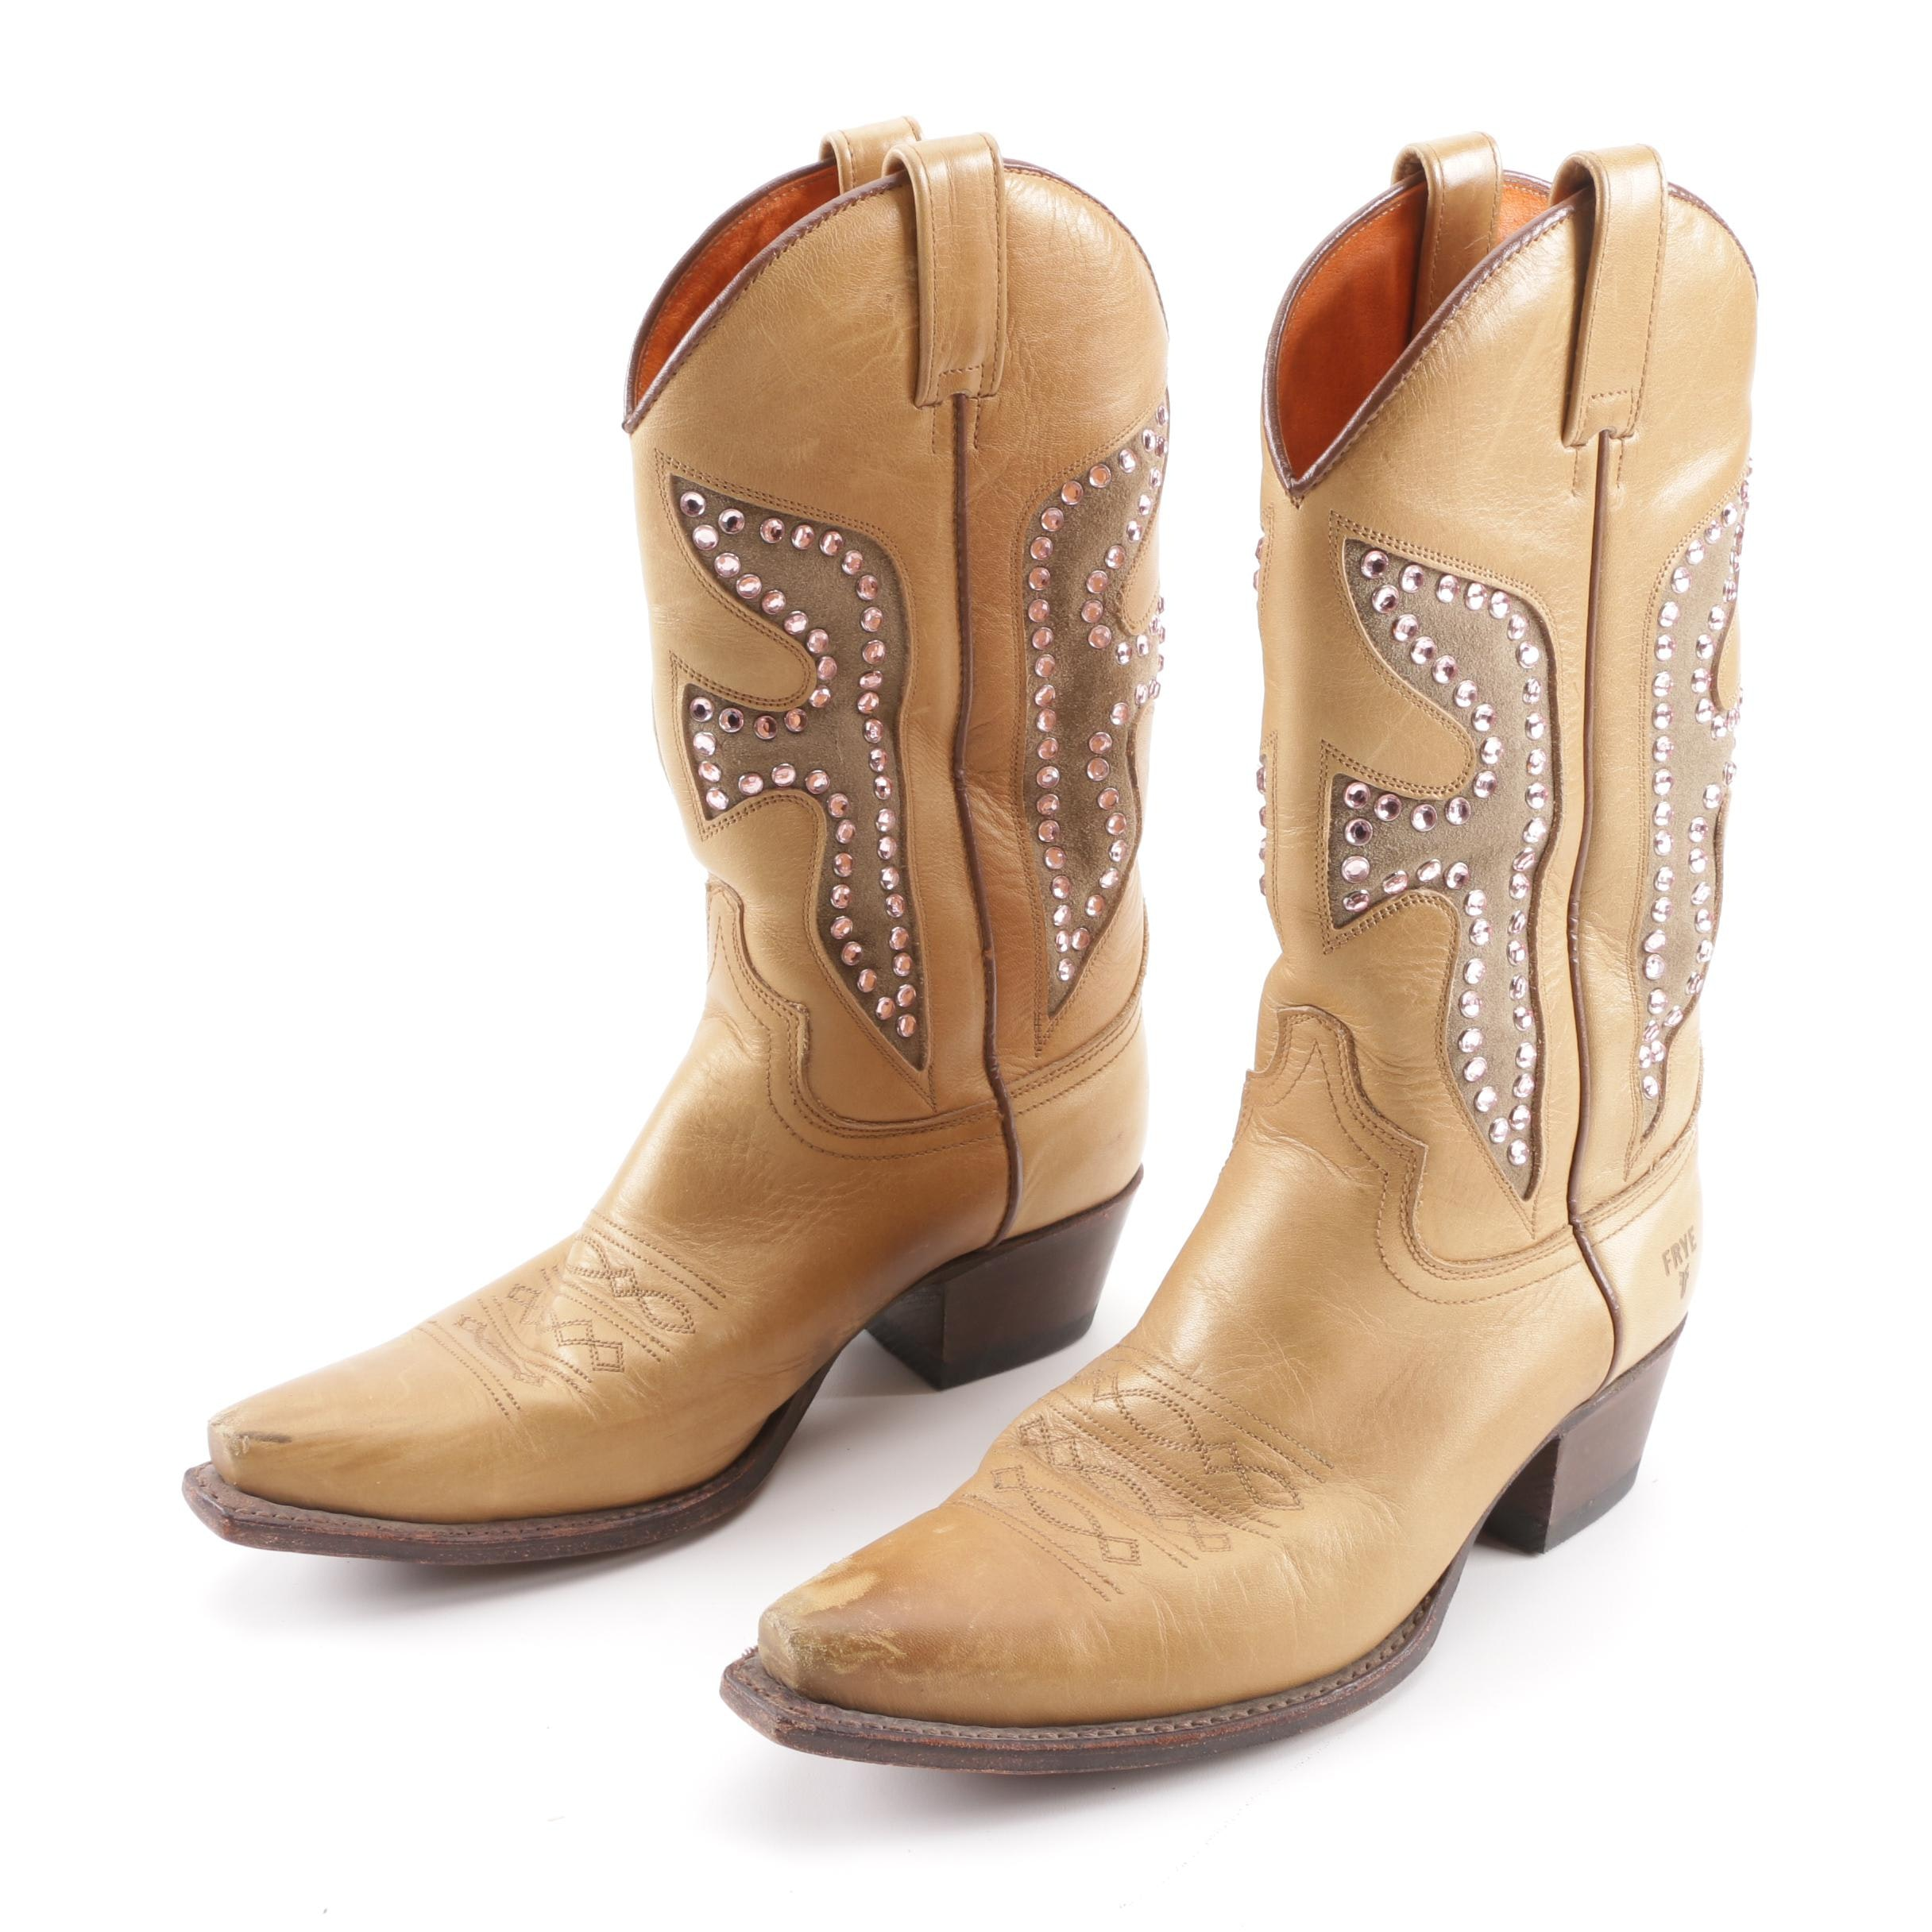 Frye Two-Tone Leather and Suede Western Boots with Pink Rhinestones